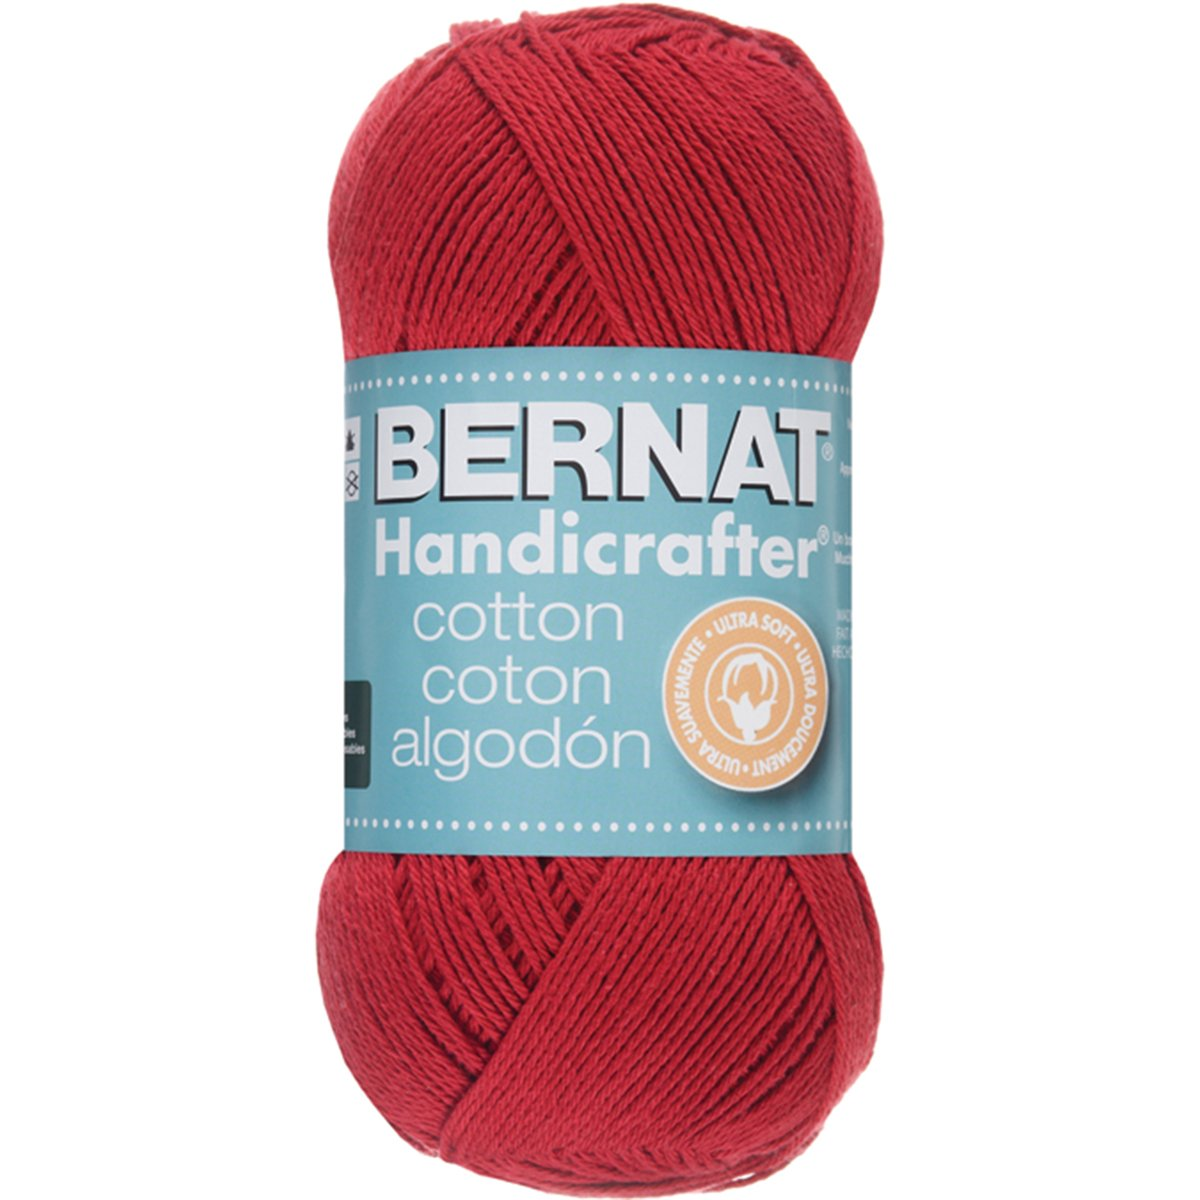 Bernat Handicrafter Cotton Yarn, Solids, Country Red, Single Ball